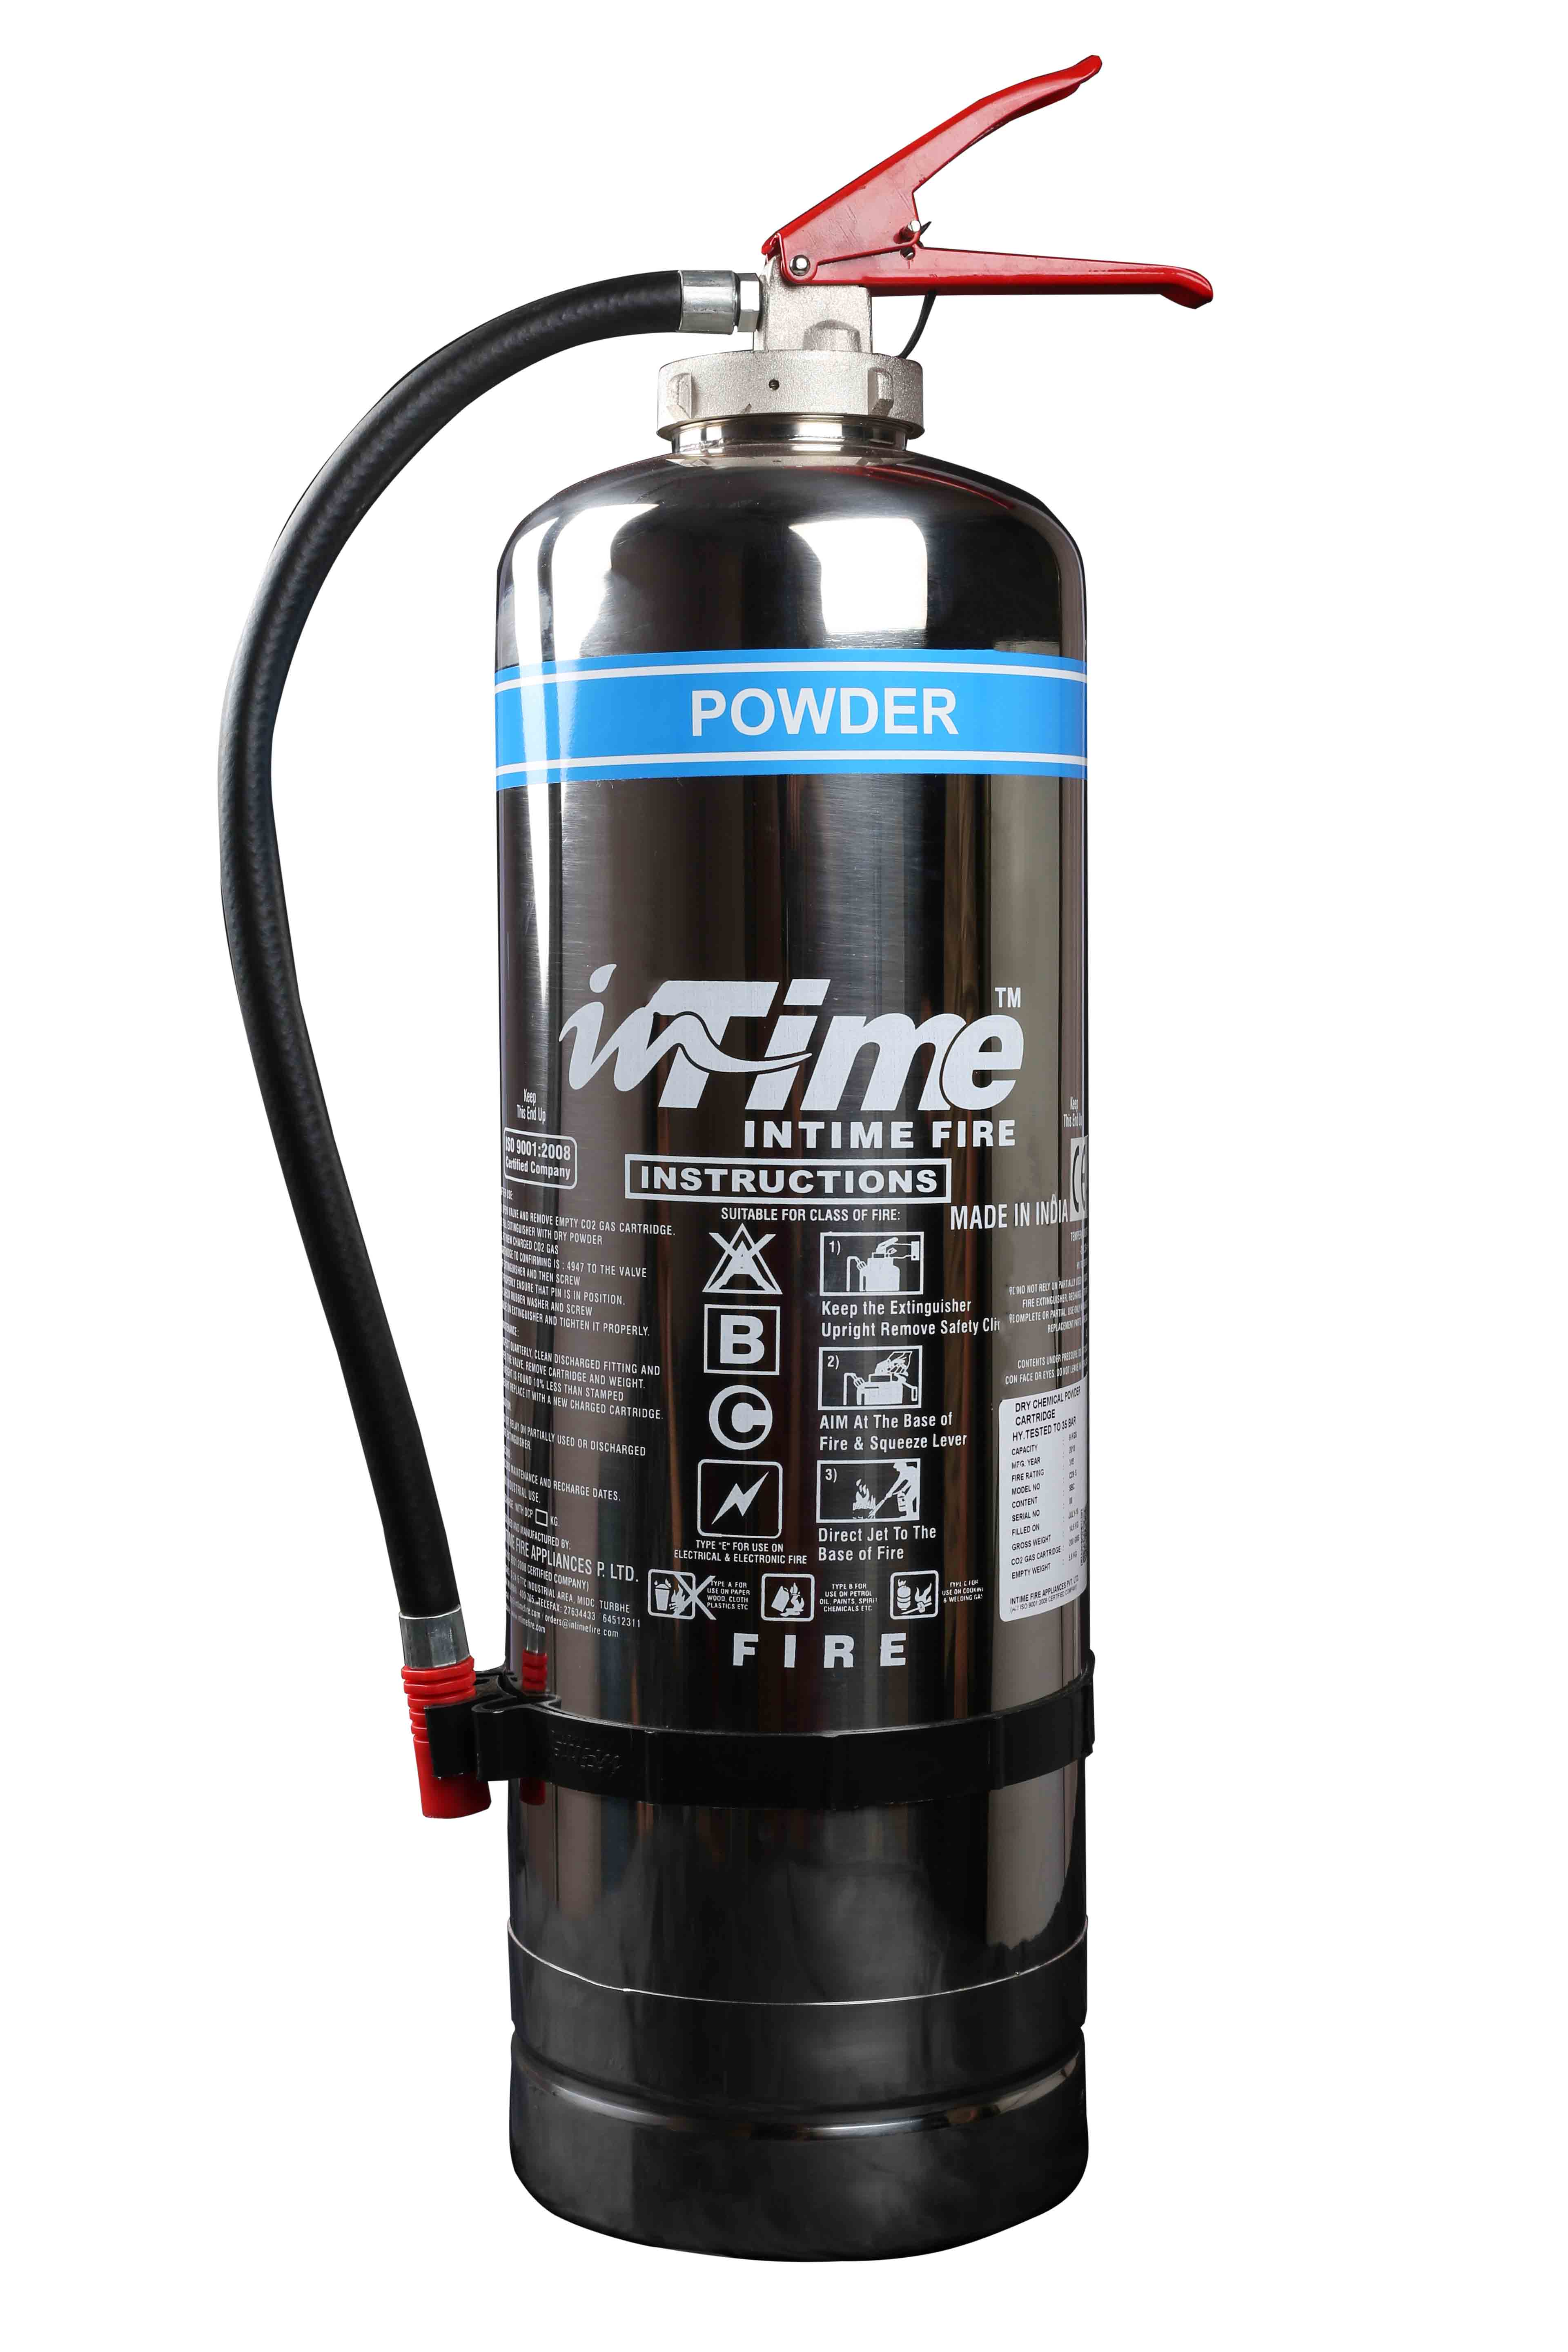 Cartridge Operated Stainless Steel Powder Type Fire Extinguishers